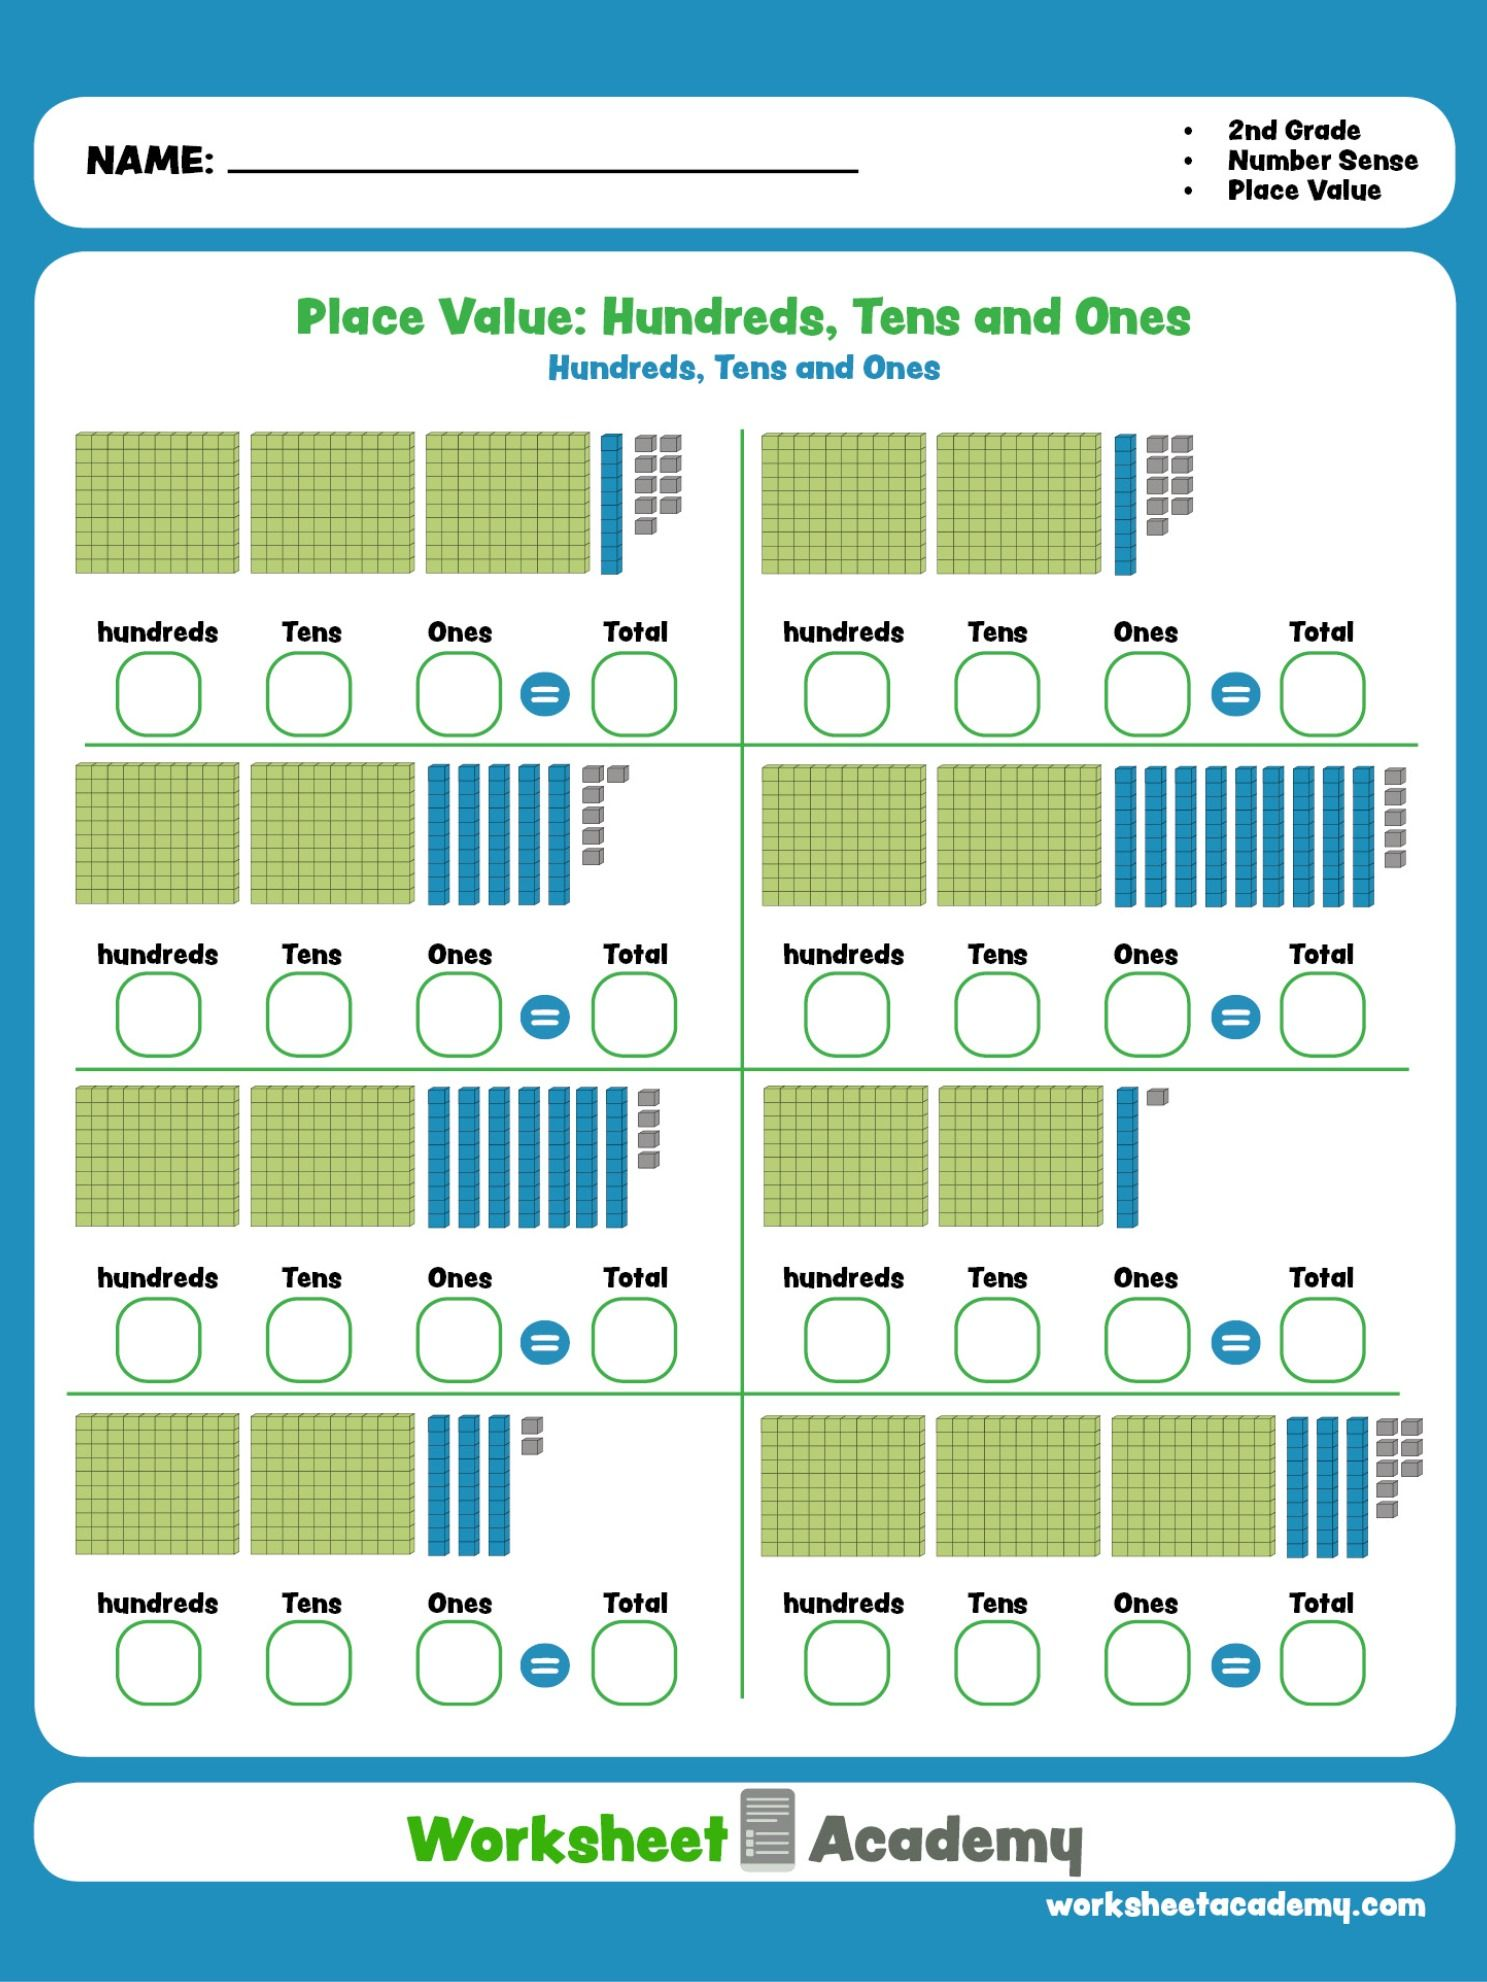 A Great Math Worksheet To Help Your Student Master Place